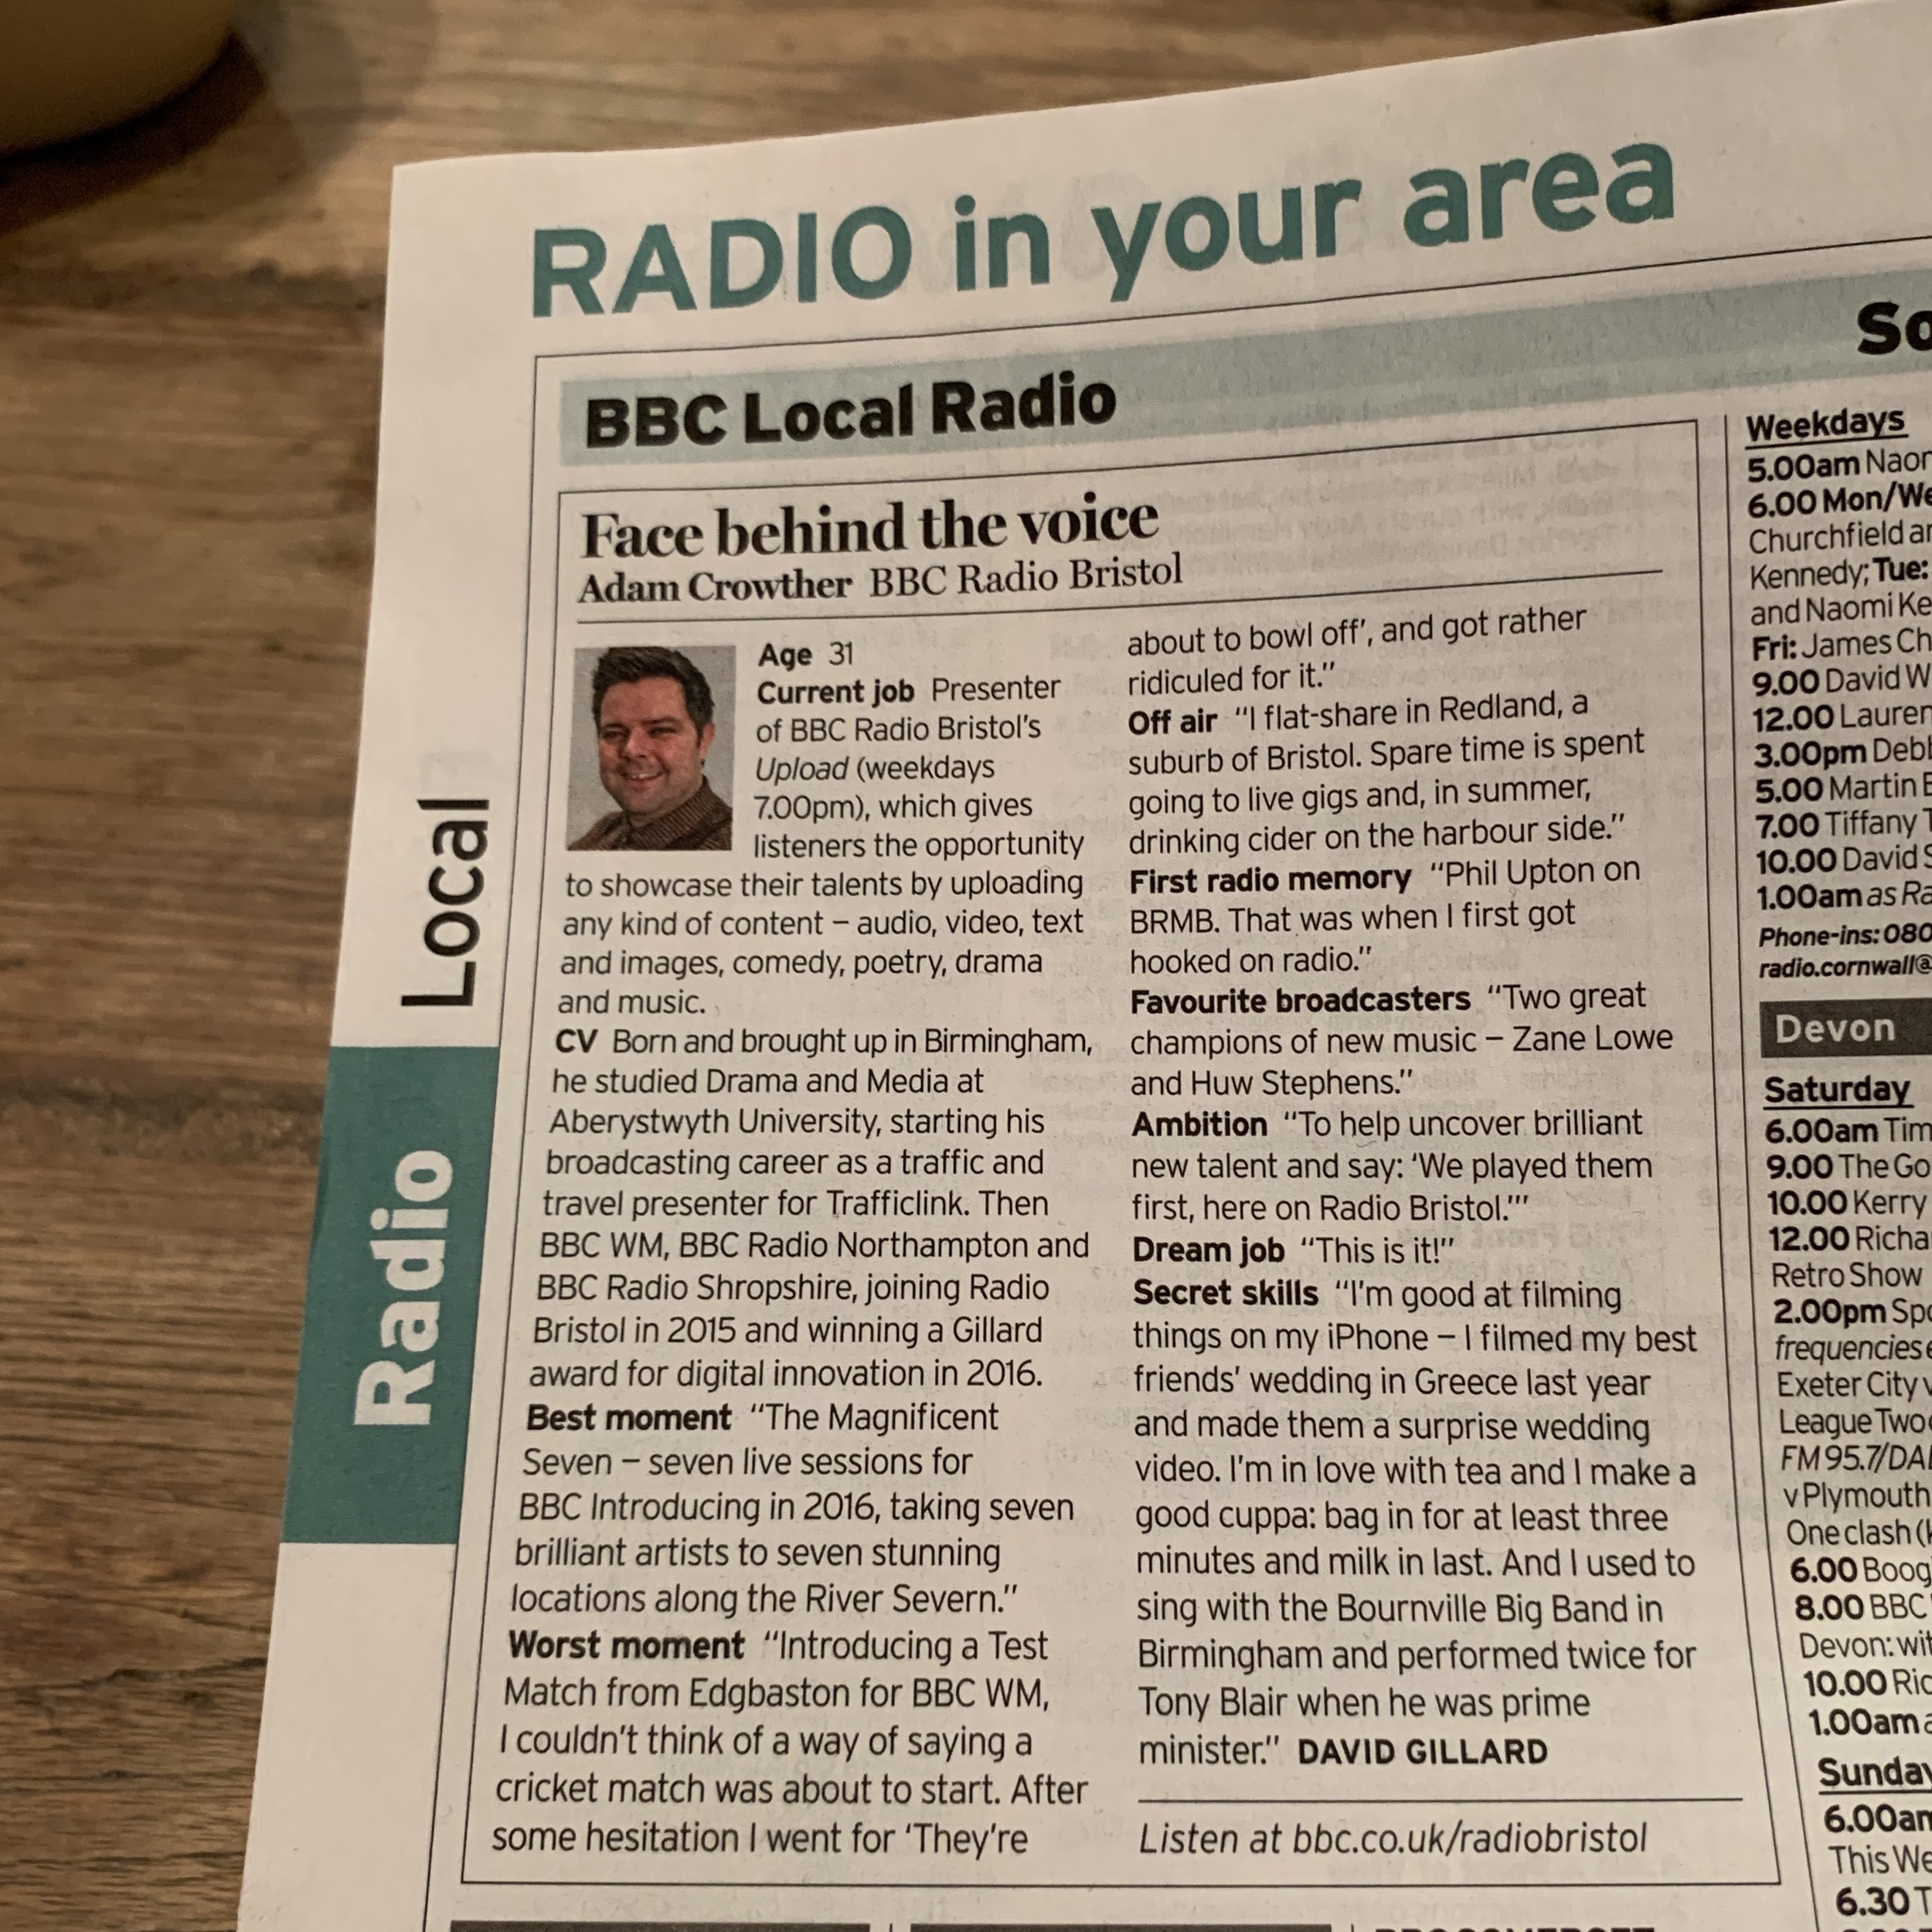 Radio Times - Face behind the voice